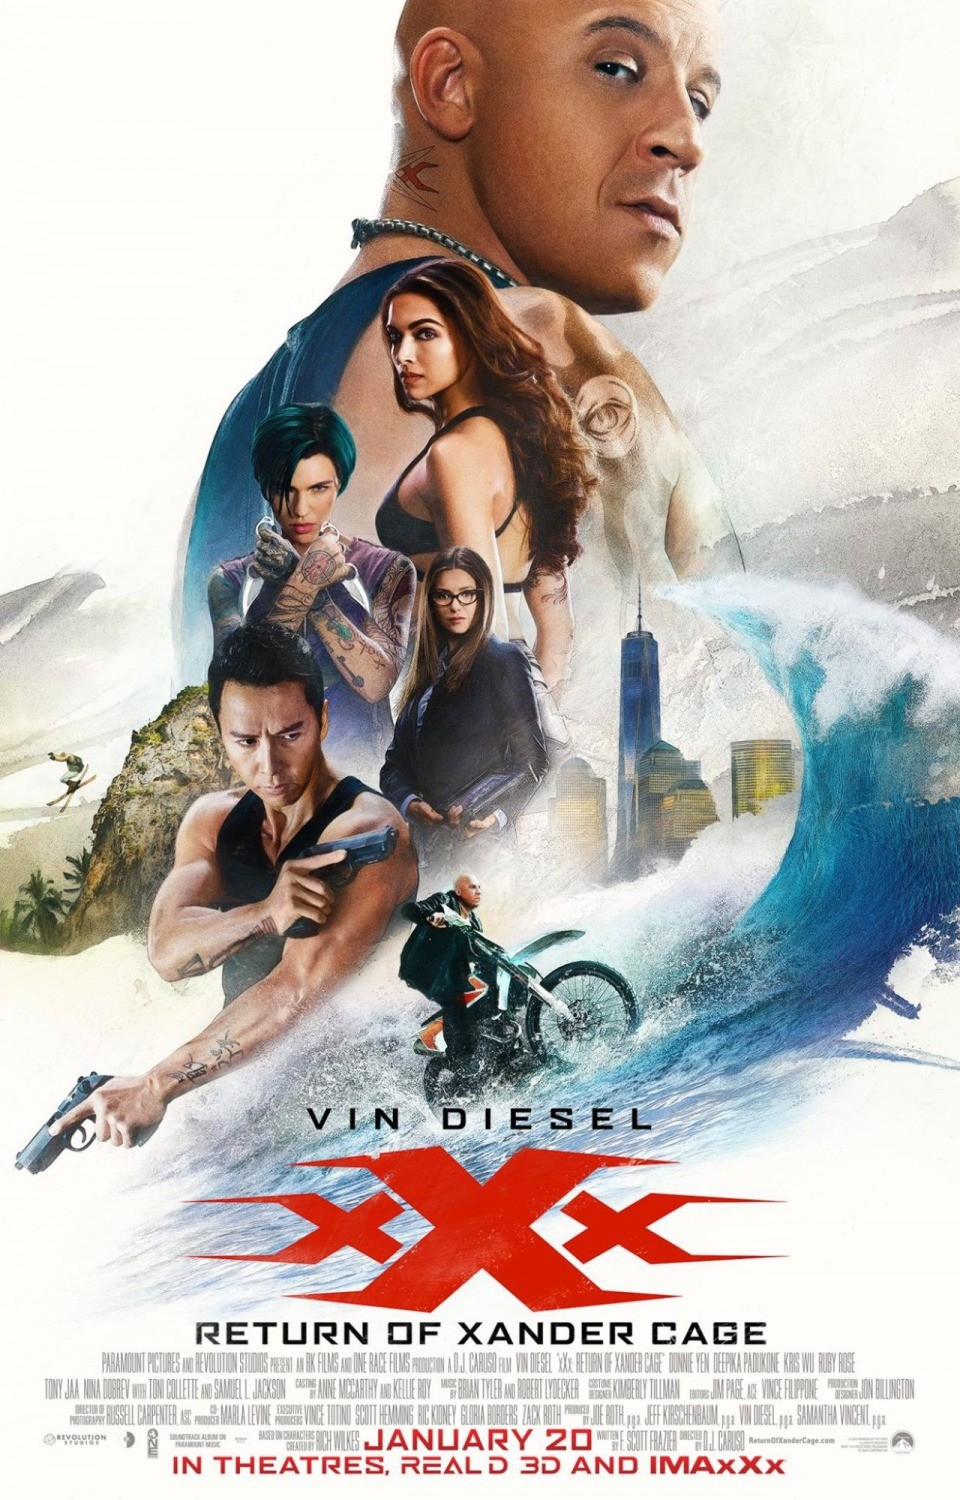 XXX: Return of Xander Cage 8th Day Box Office Collection